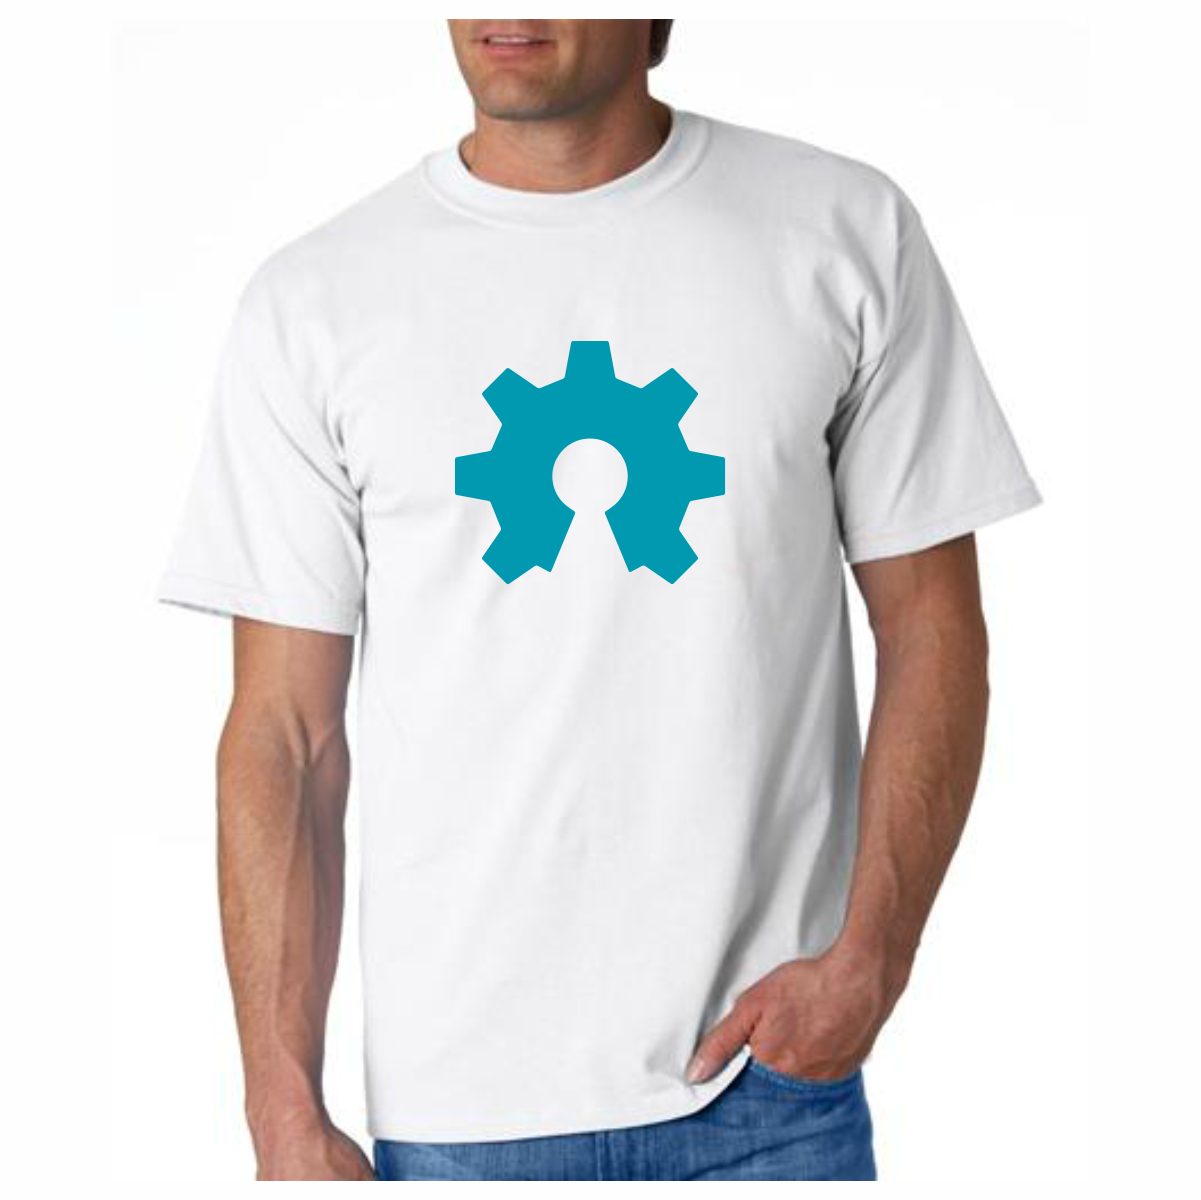 Open Source Hardware T-Shirt